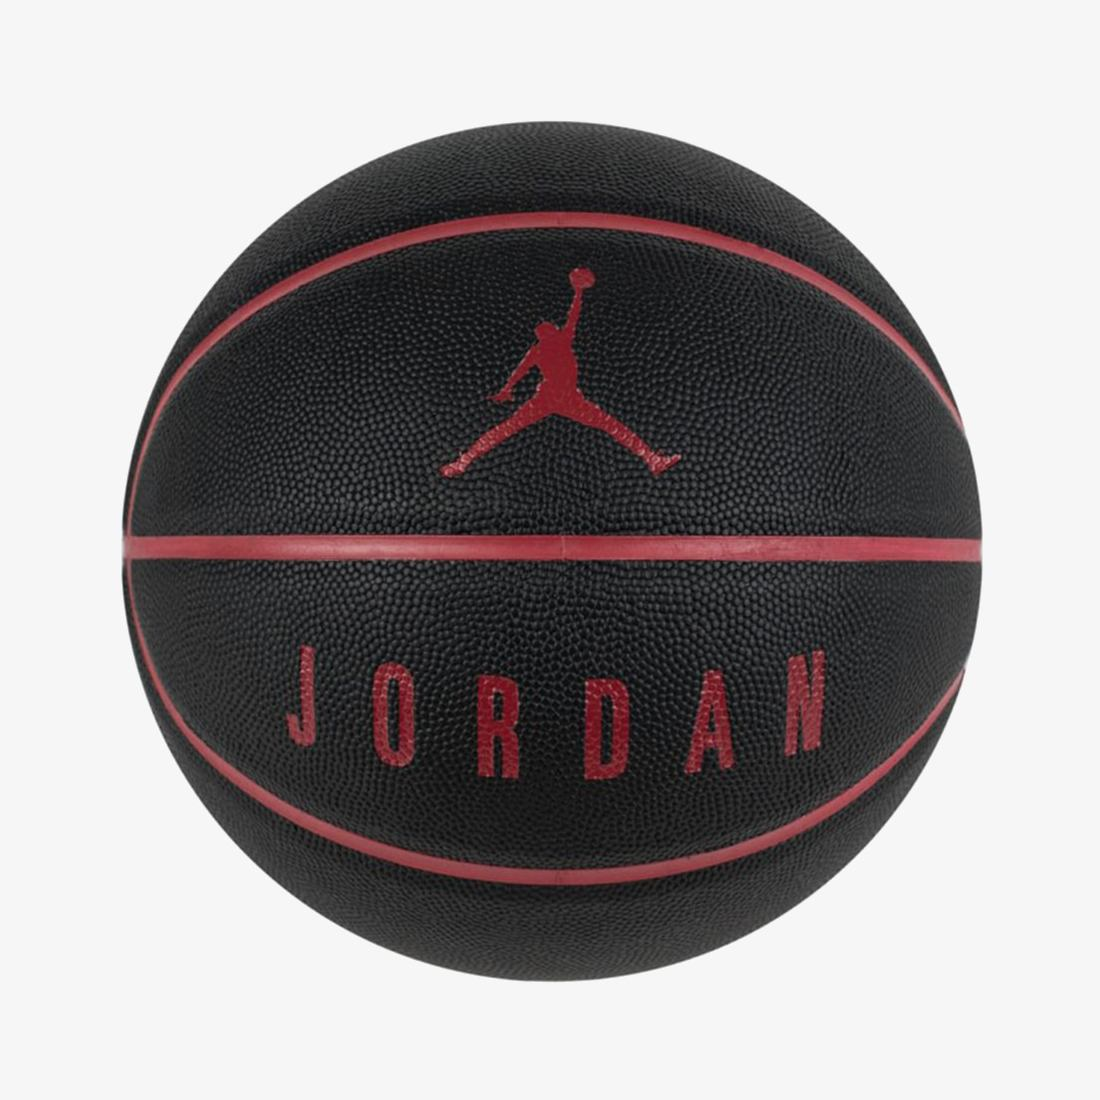 Мяч баскетбольный JORDAN ULTIMATE 8P BLACK/GYM RED/GYM RED 07